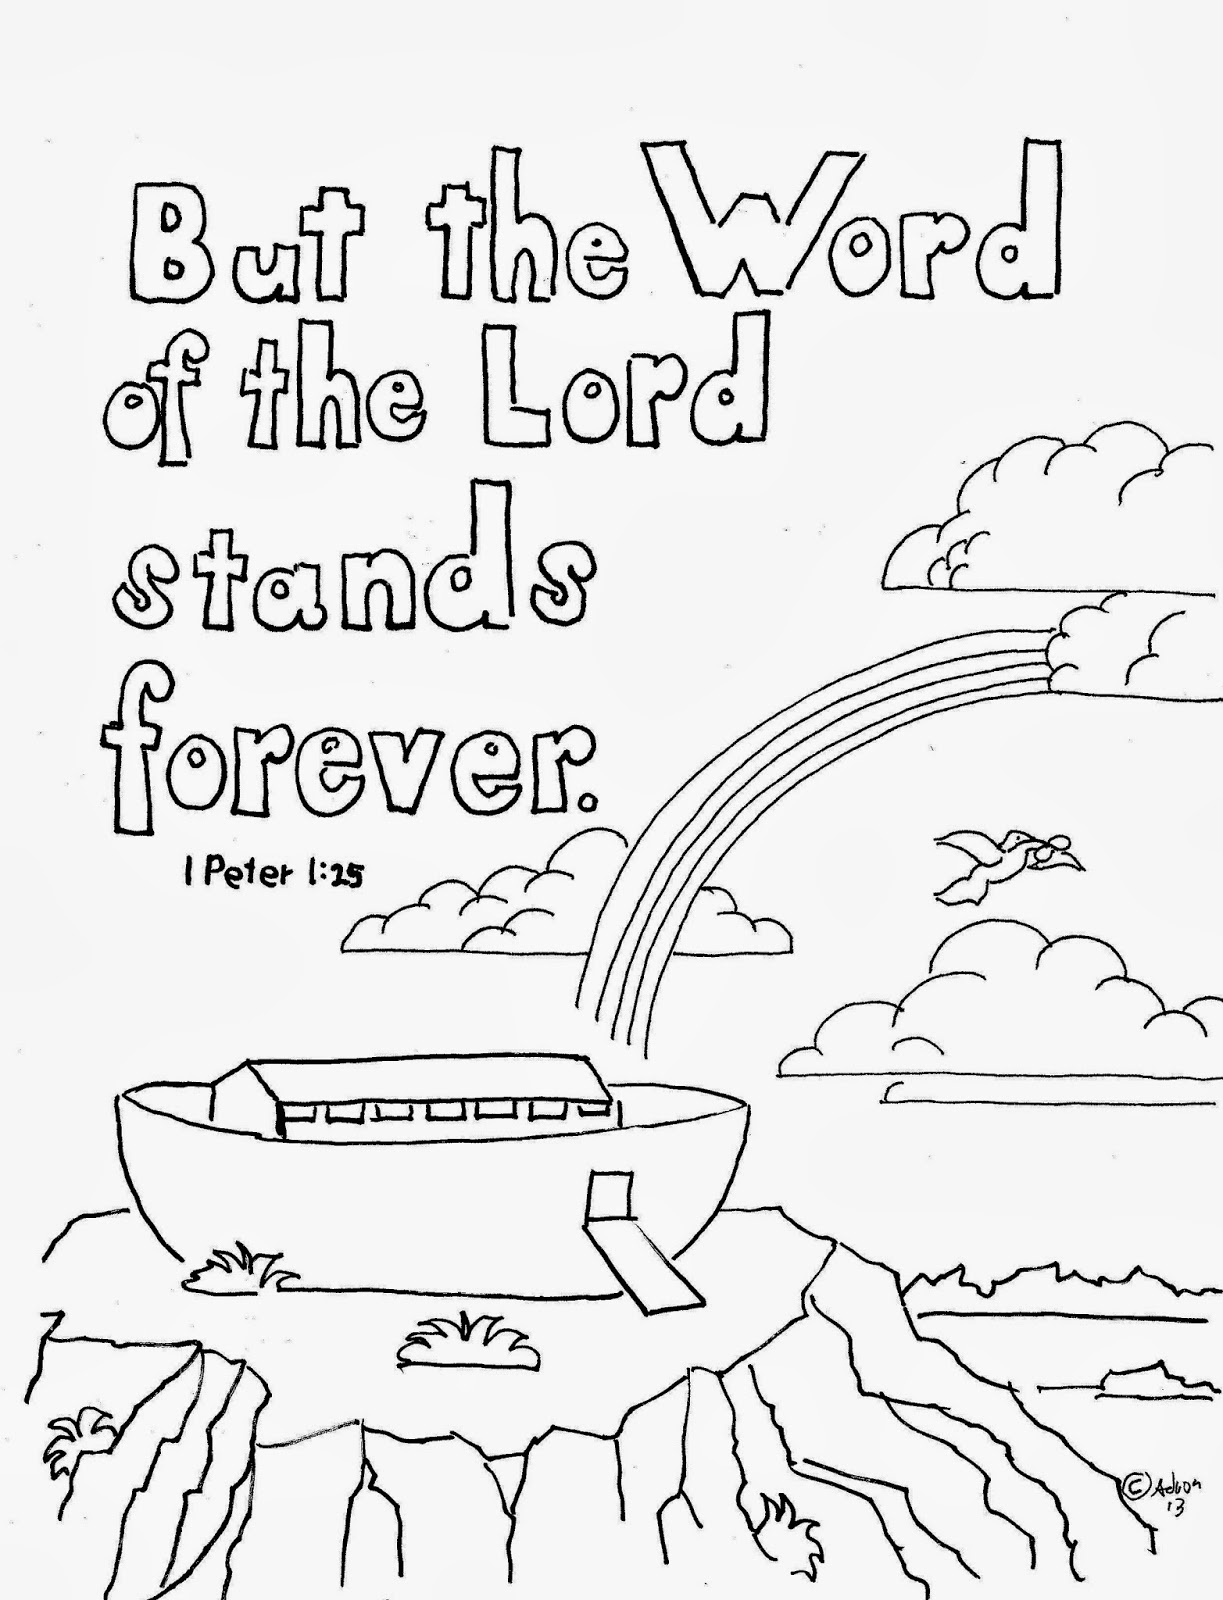 psalms 119 105 coloring page psalm 119 105 coloring page sketch coloring page 119 page coloring psalms 105